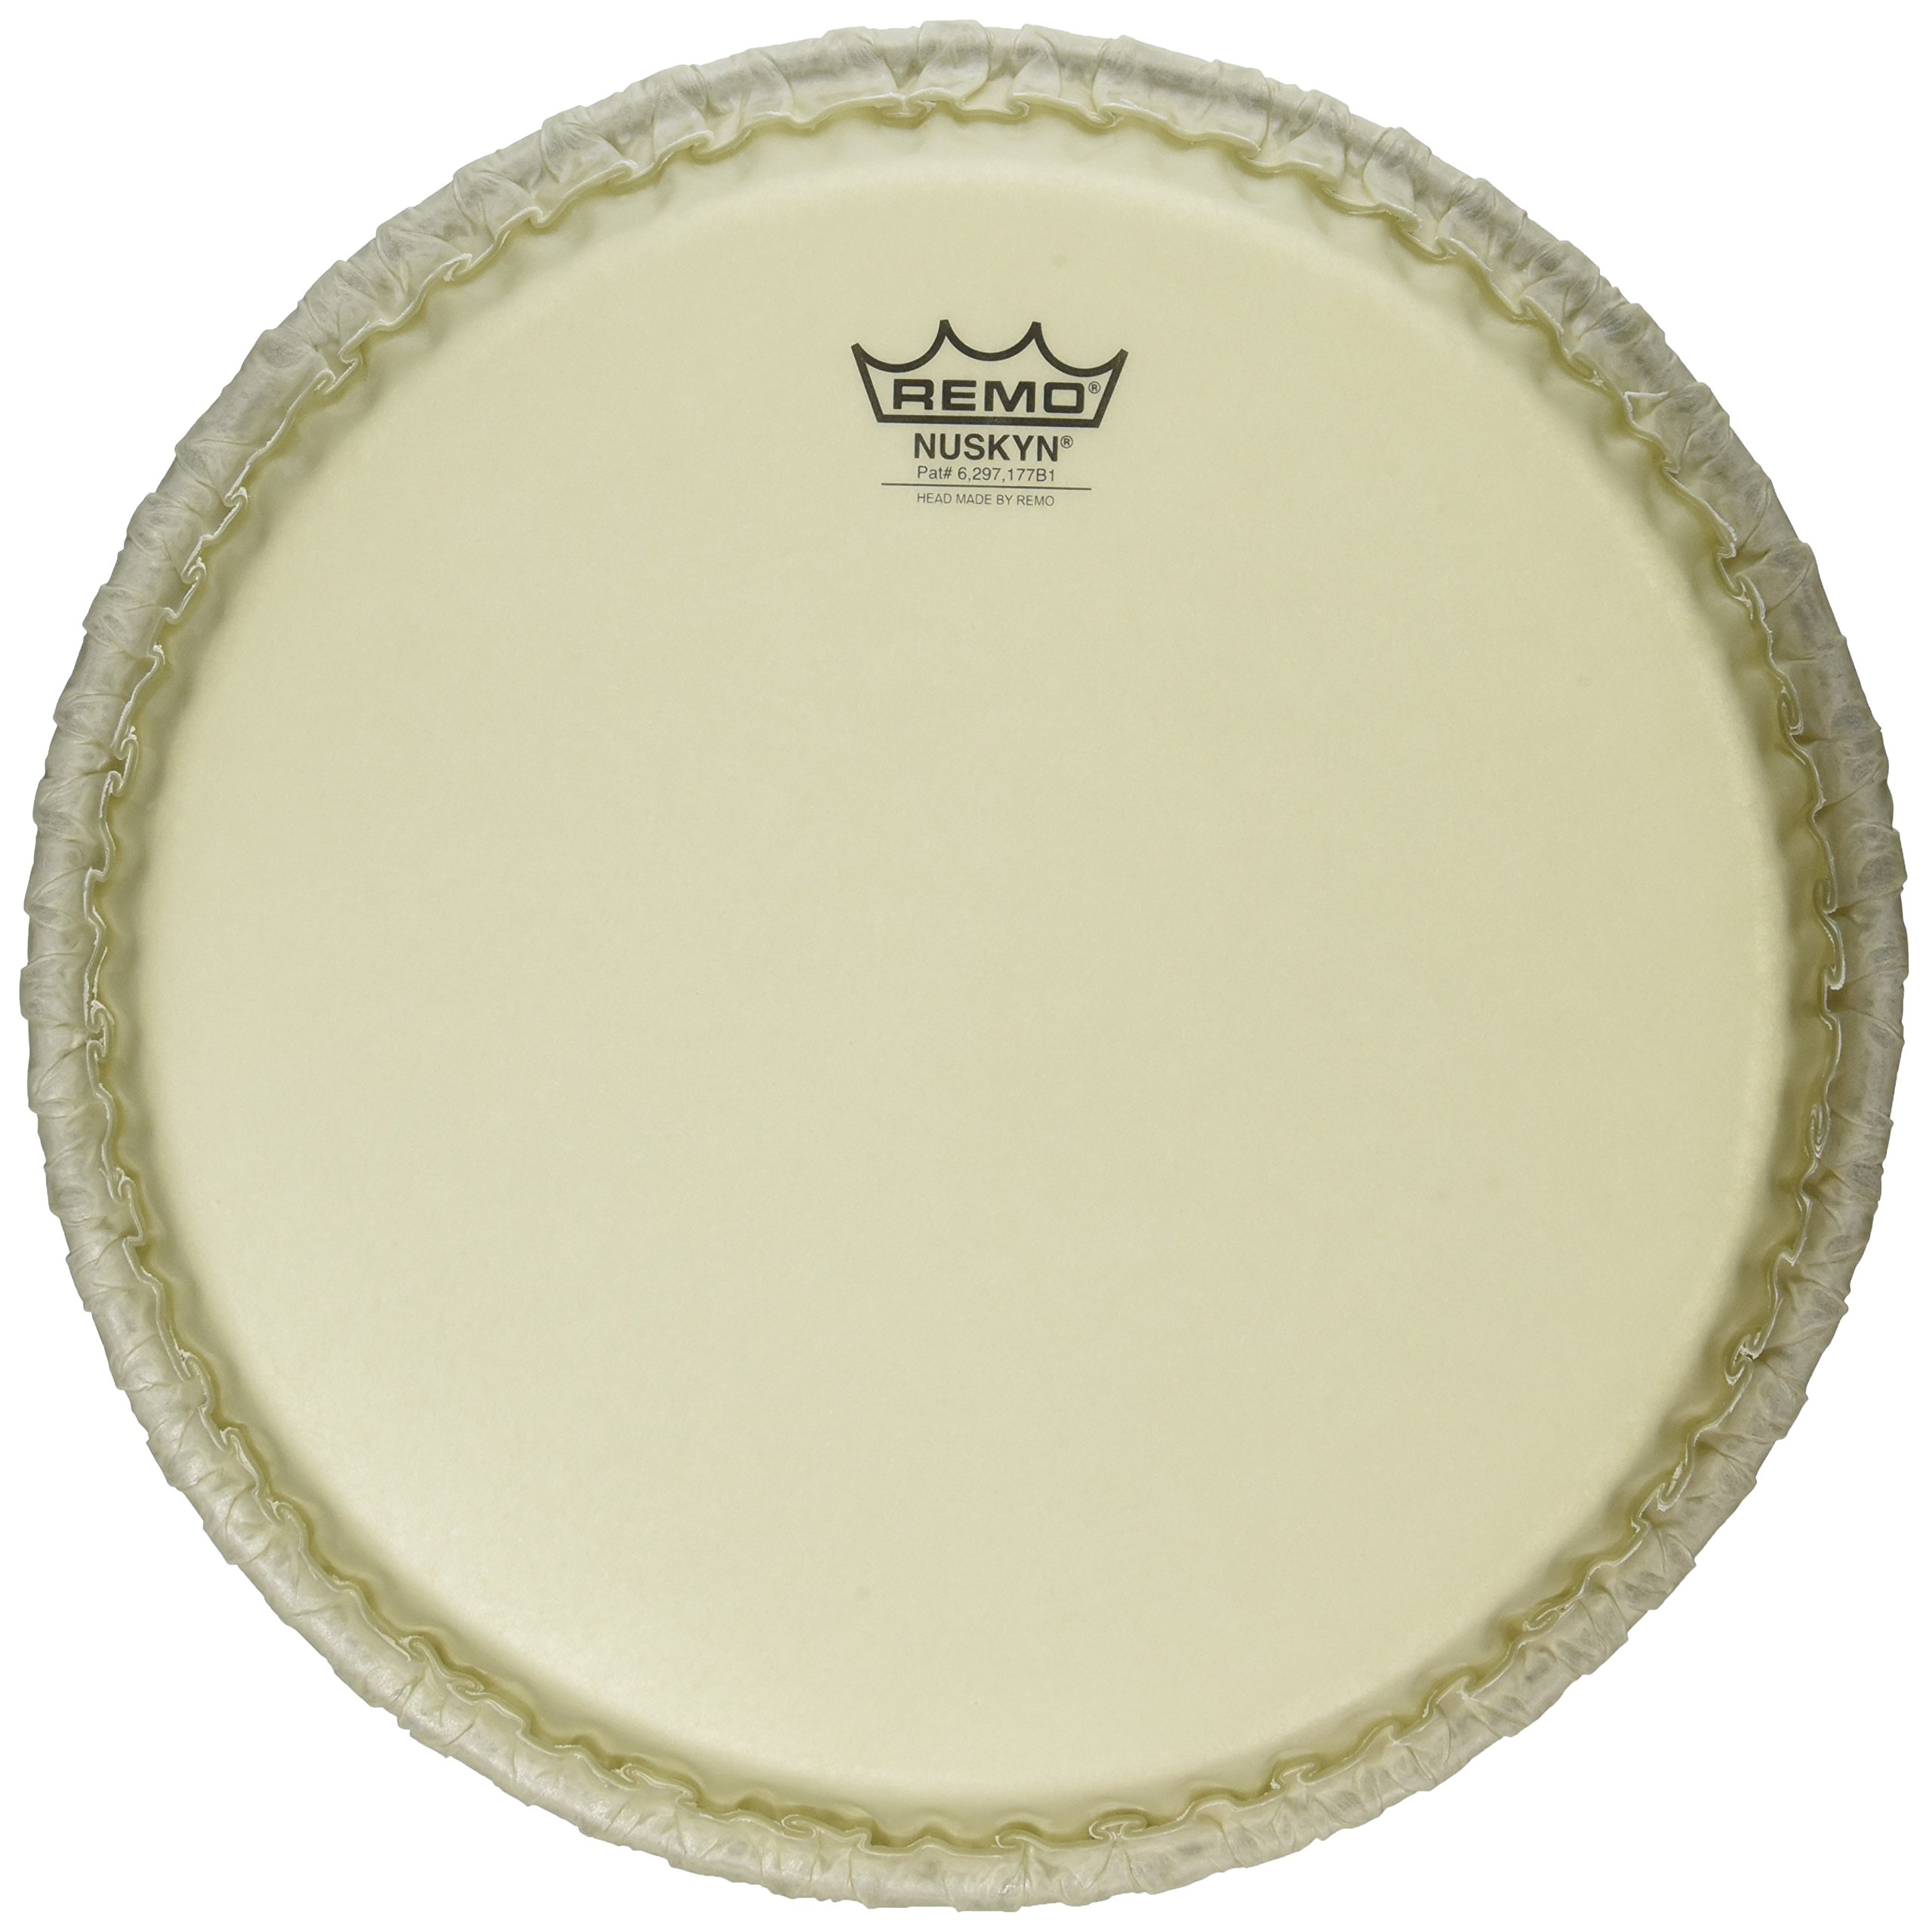 Remo Tucked Nuskyn Conga Drumhead, 11.75'' by Remo